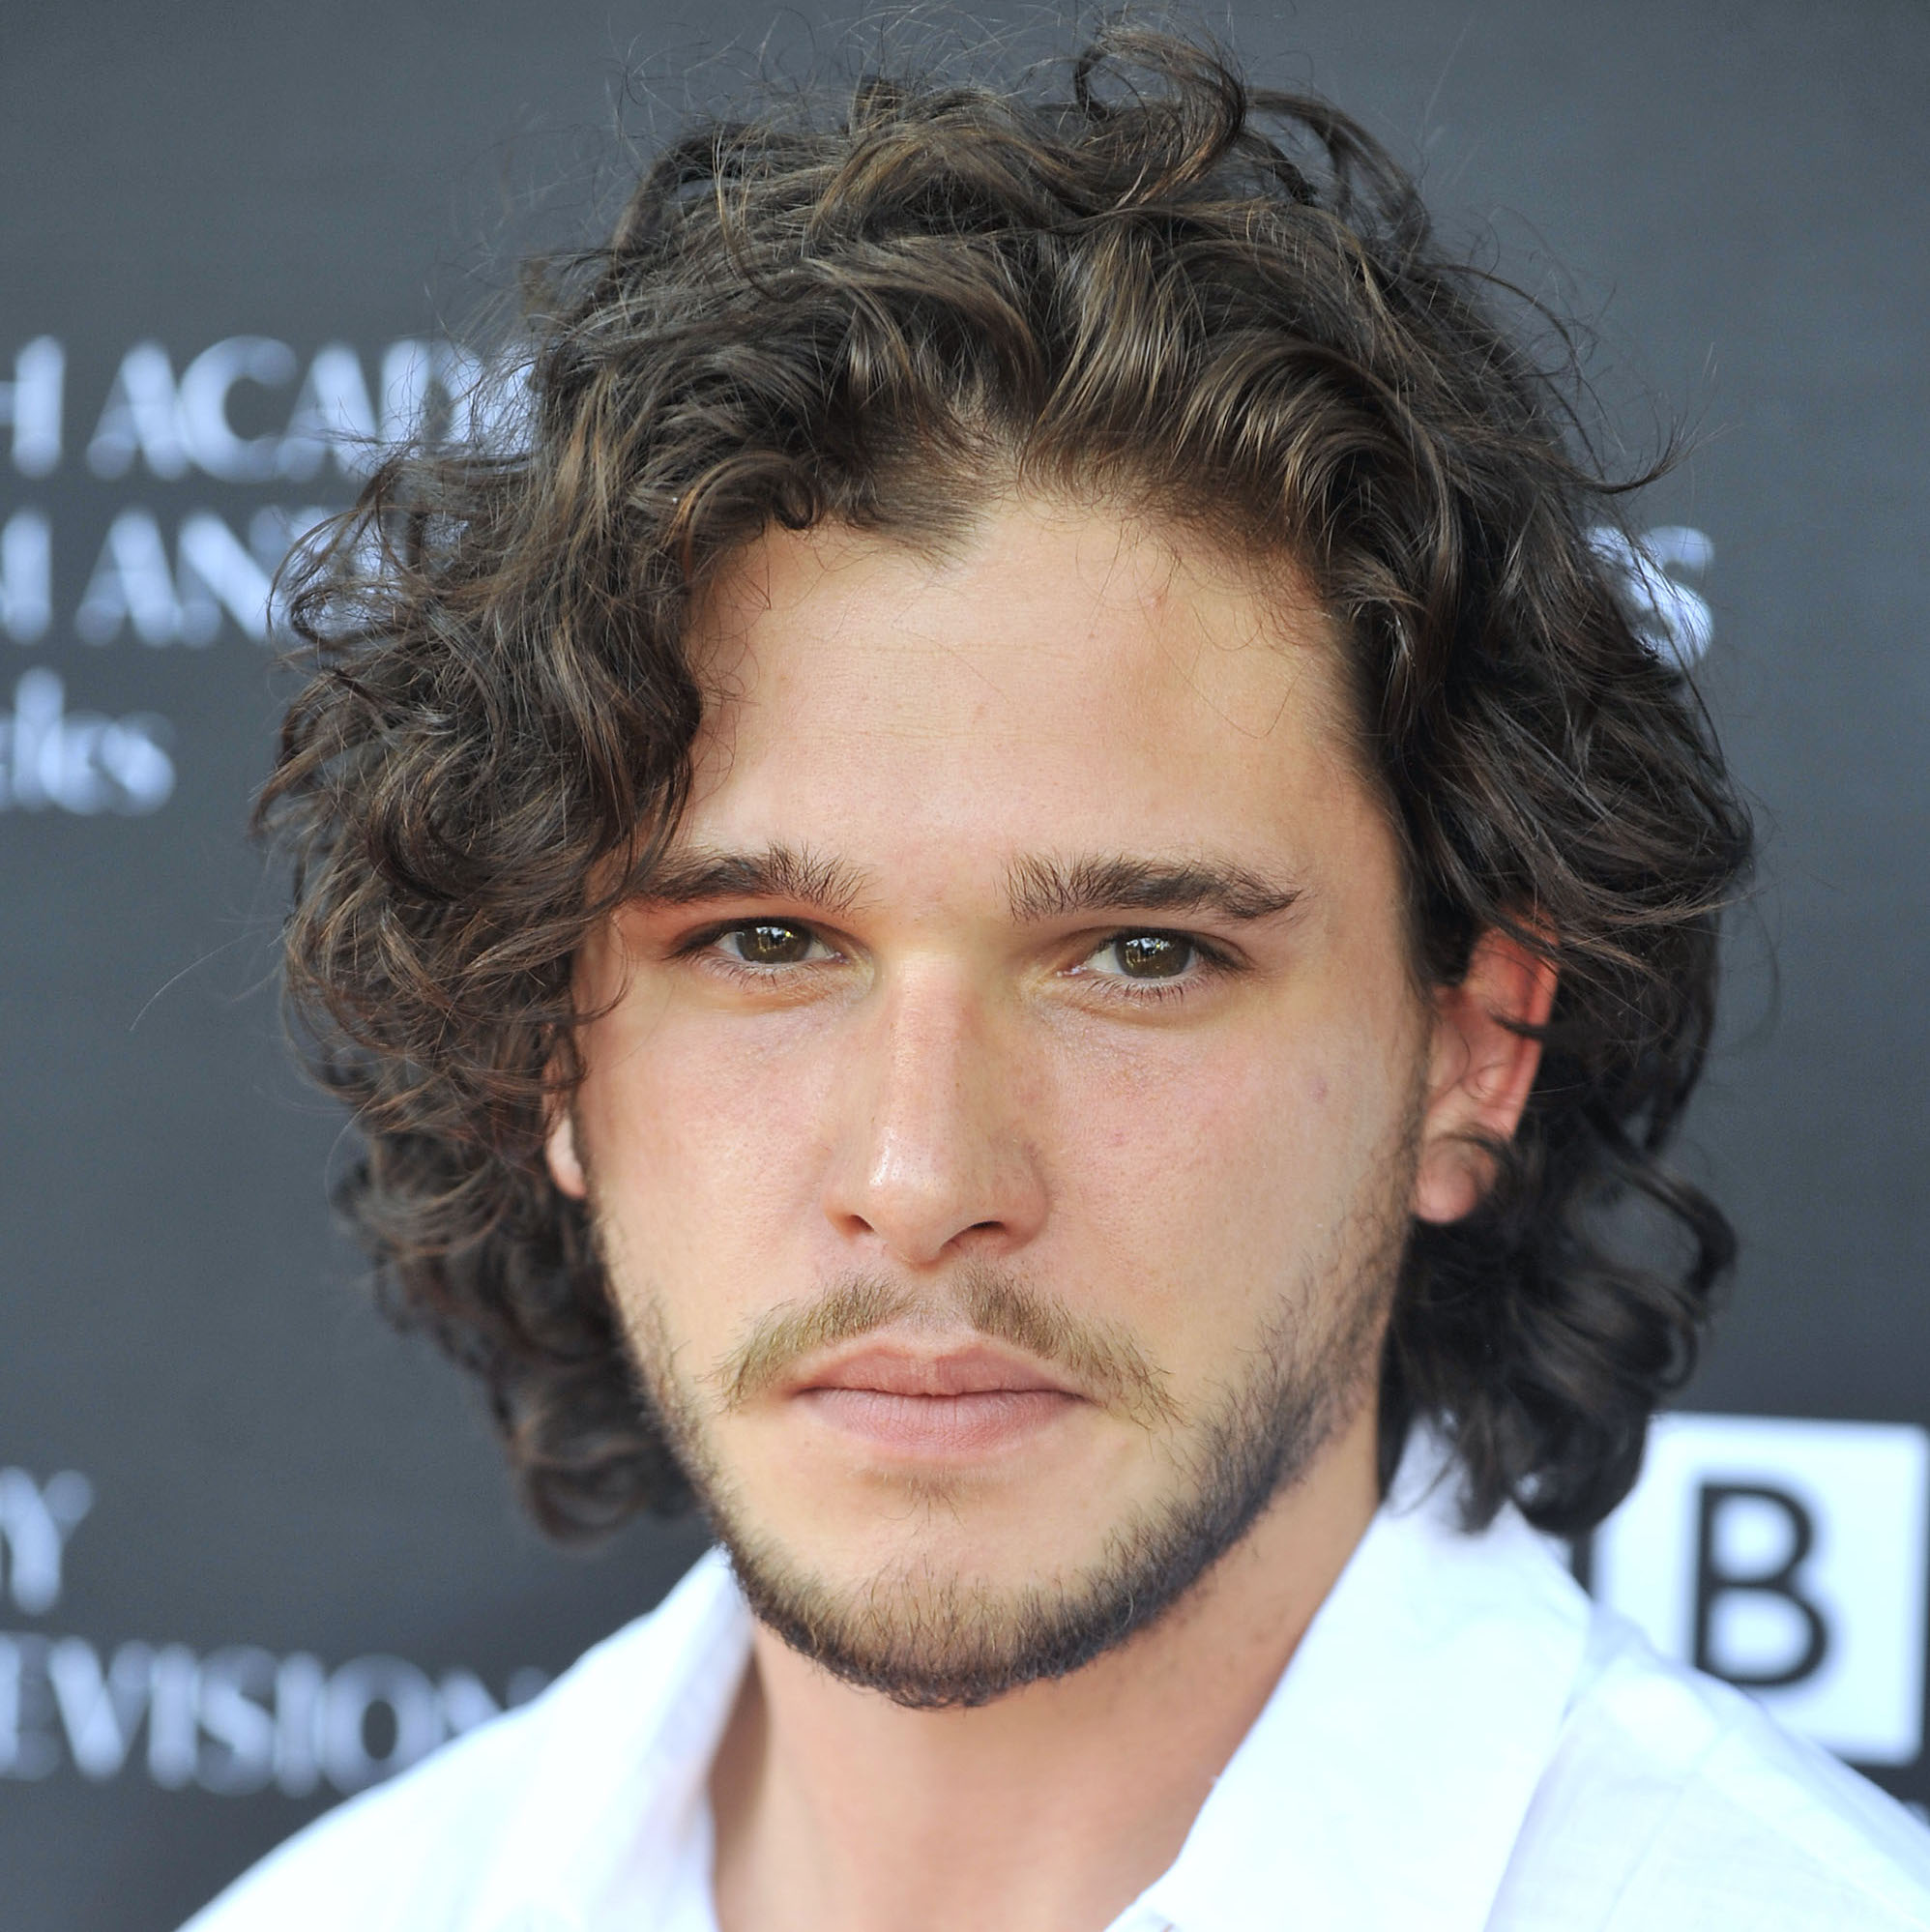 Kit Harington: Kit Harington Has One Face